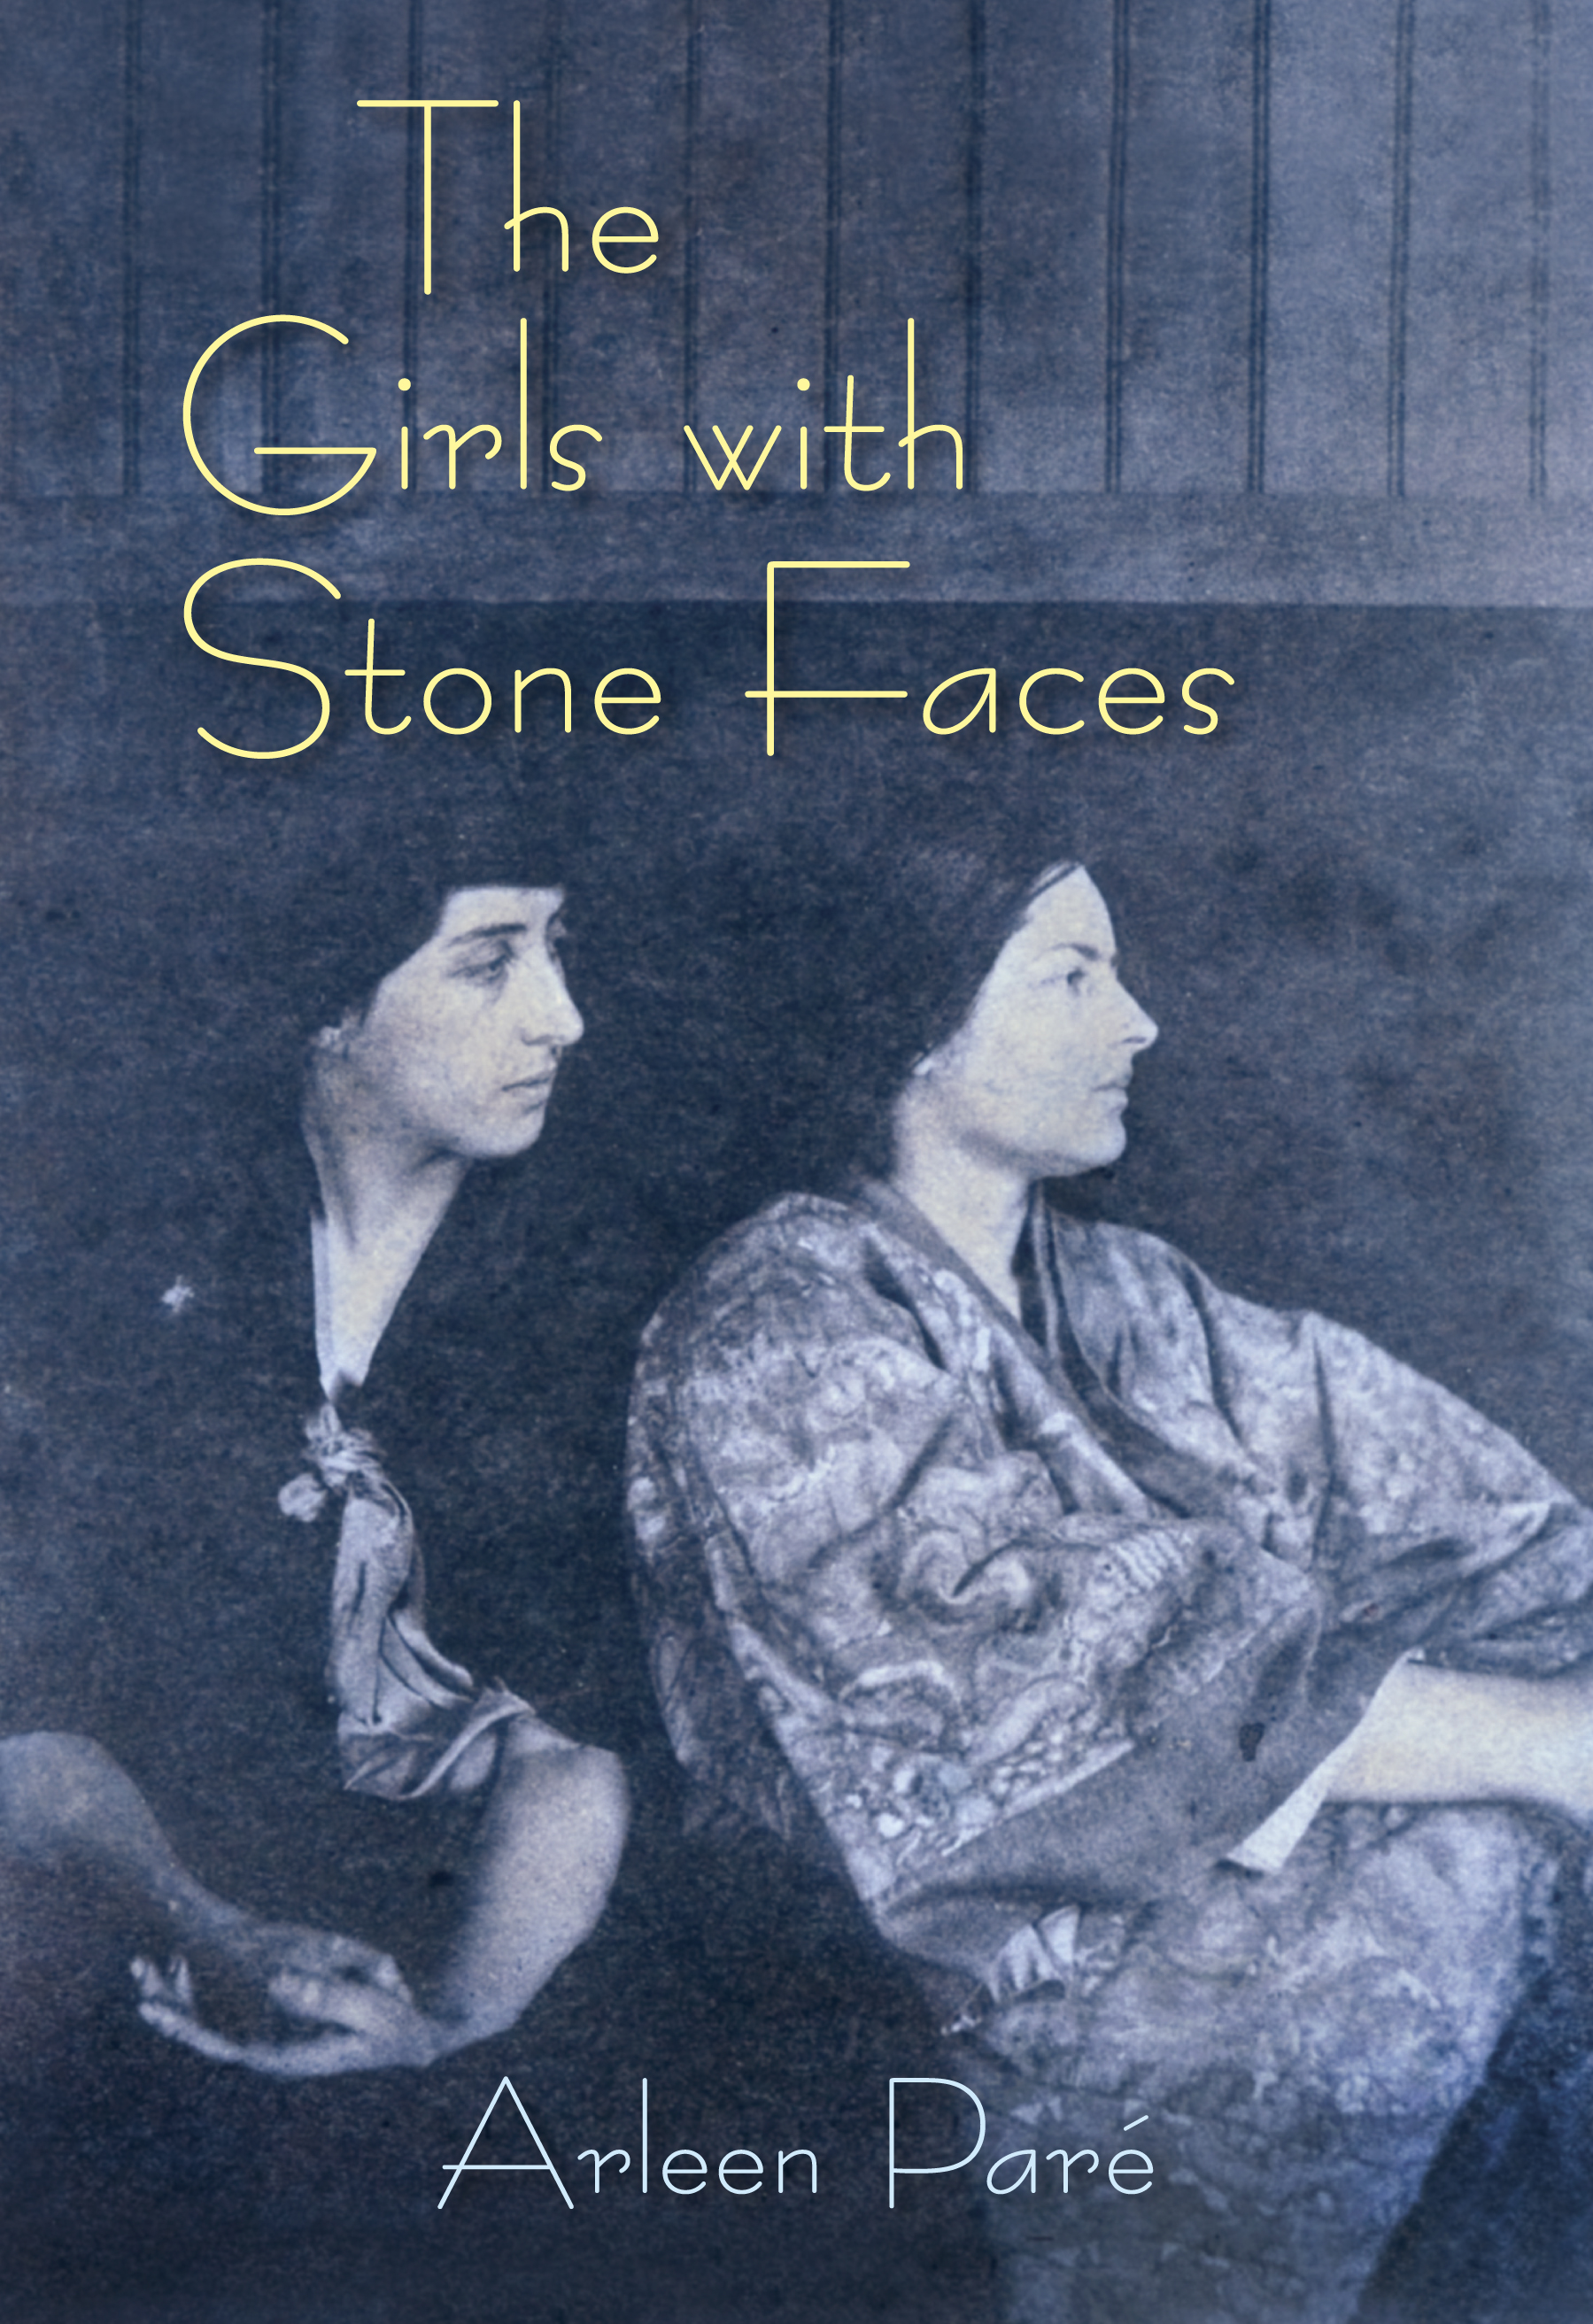 Girls-with-Stone-Faces-1.jpg